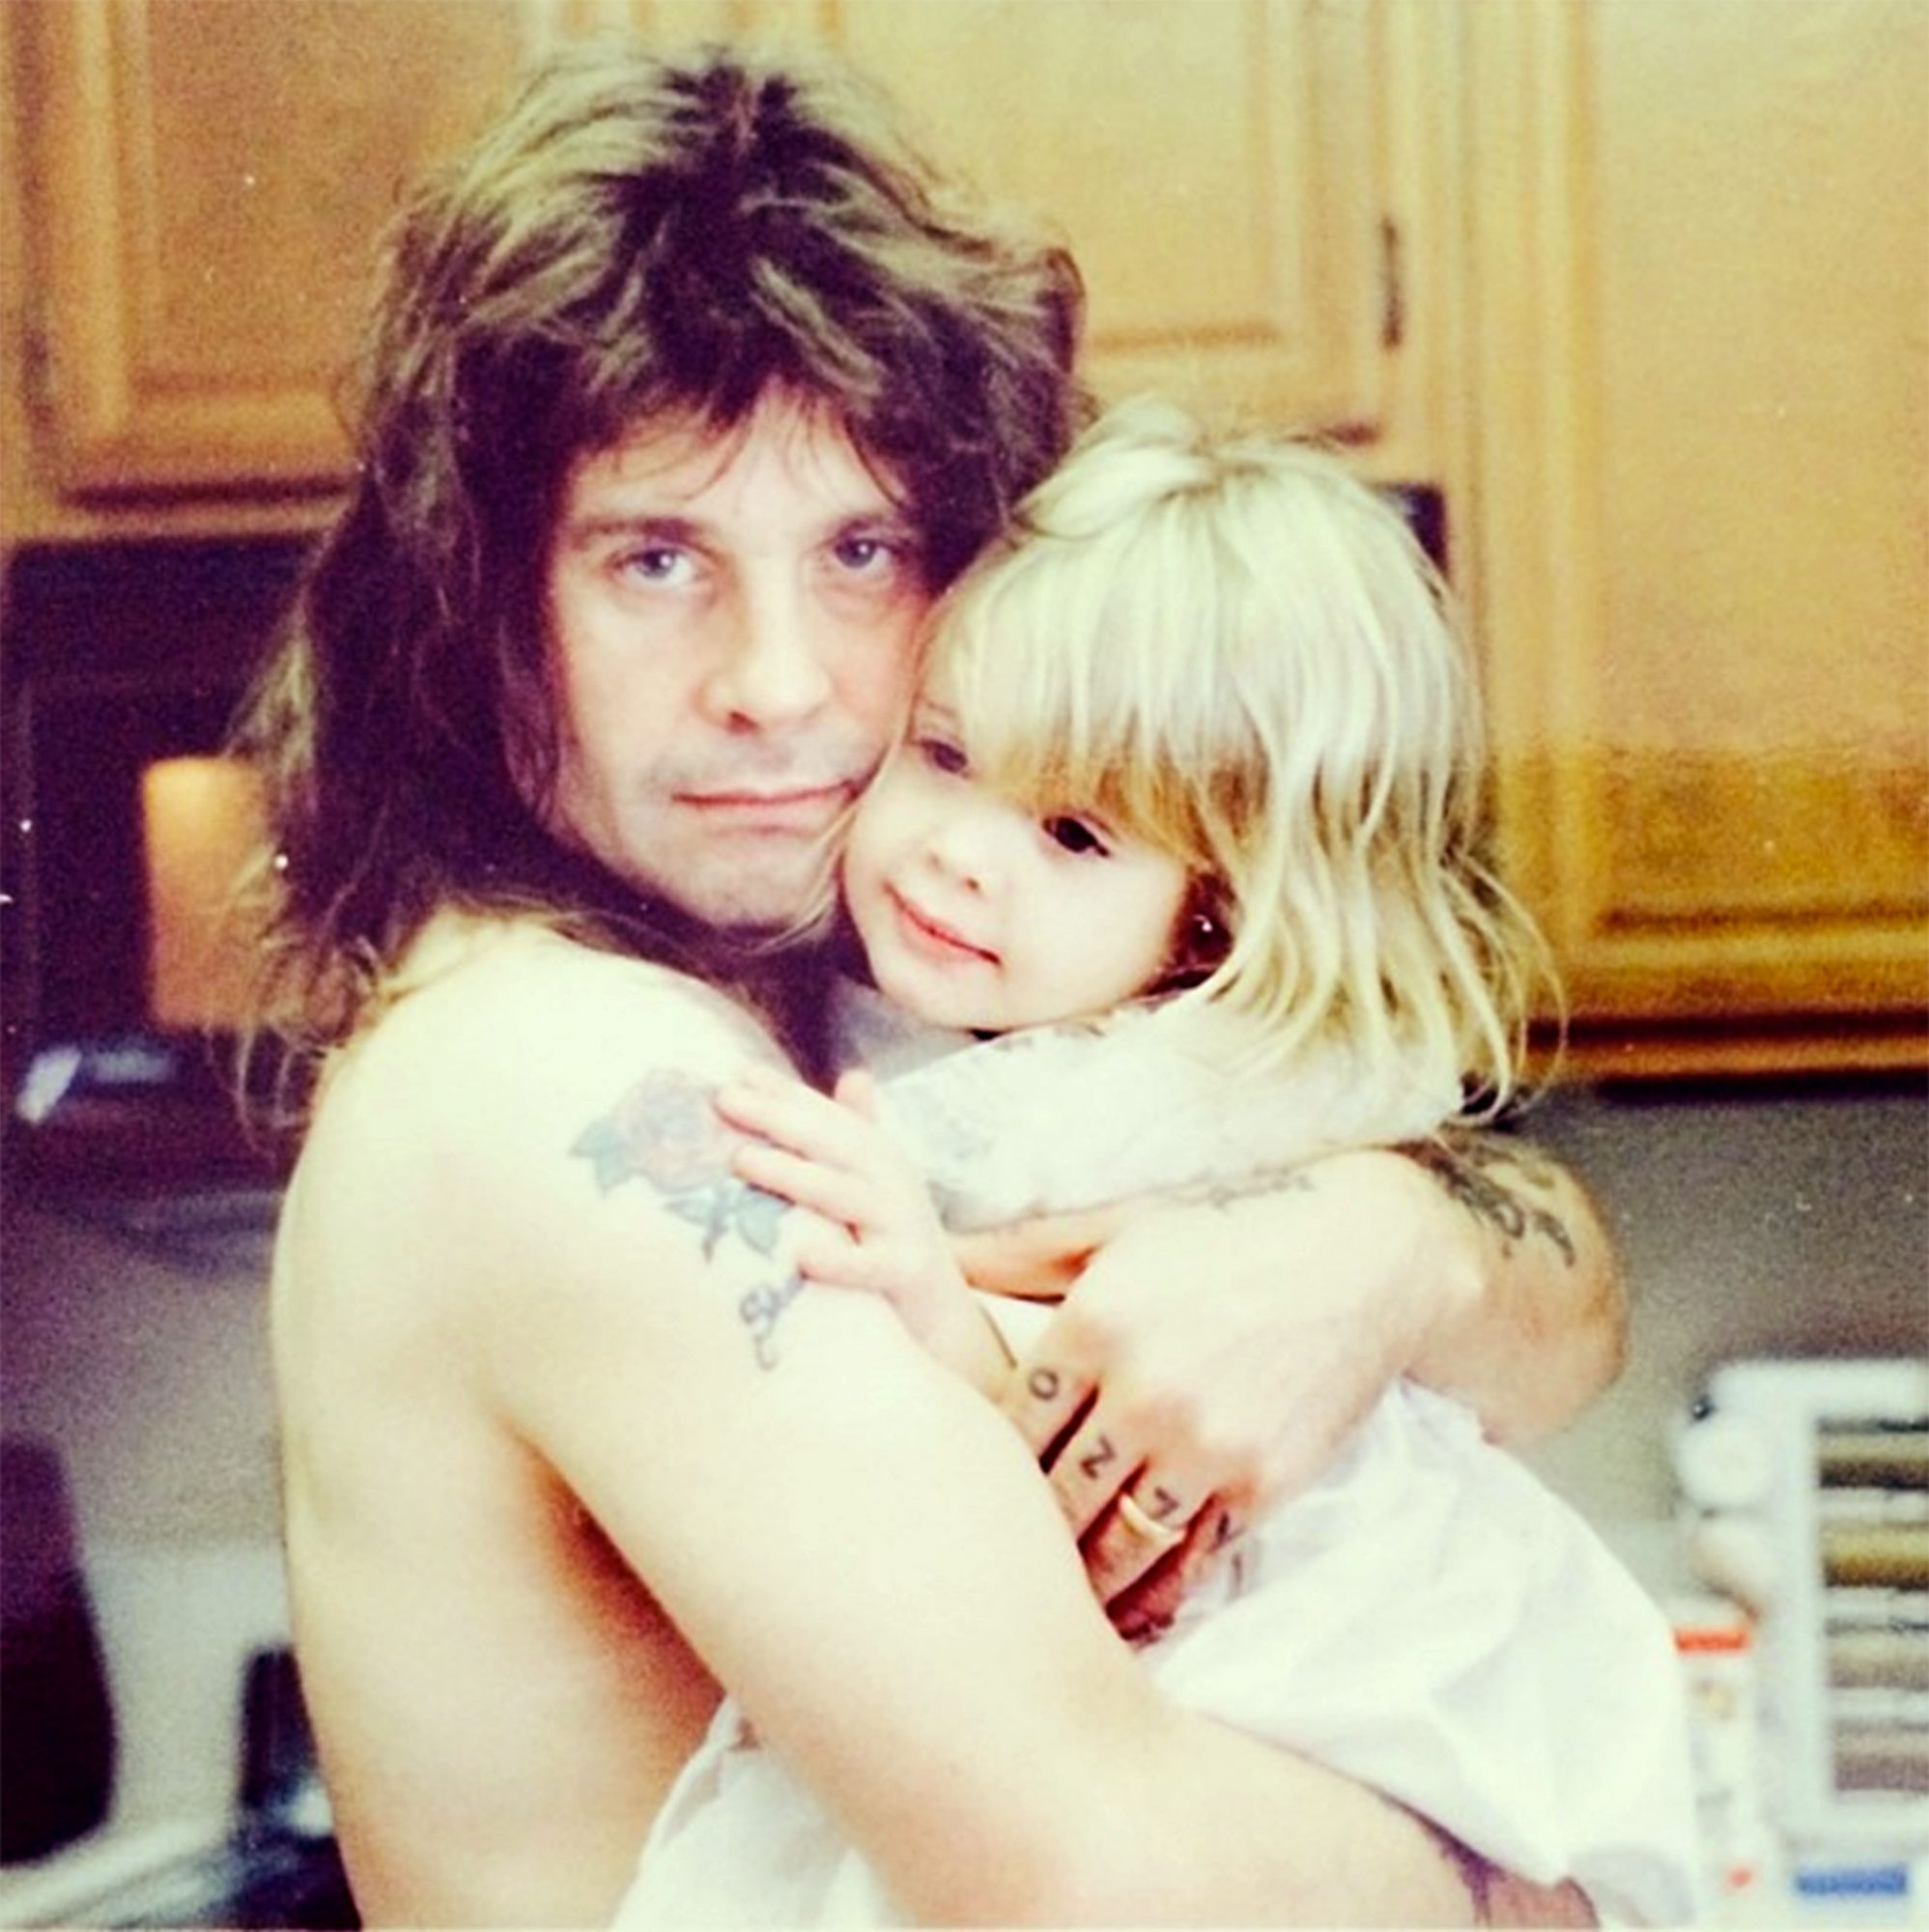 father-daughter-tbt-7